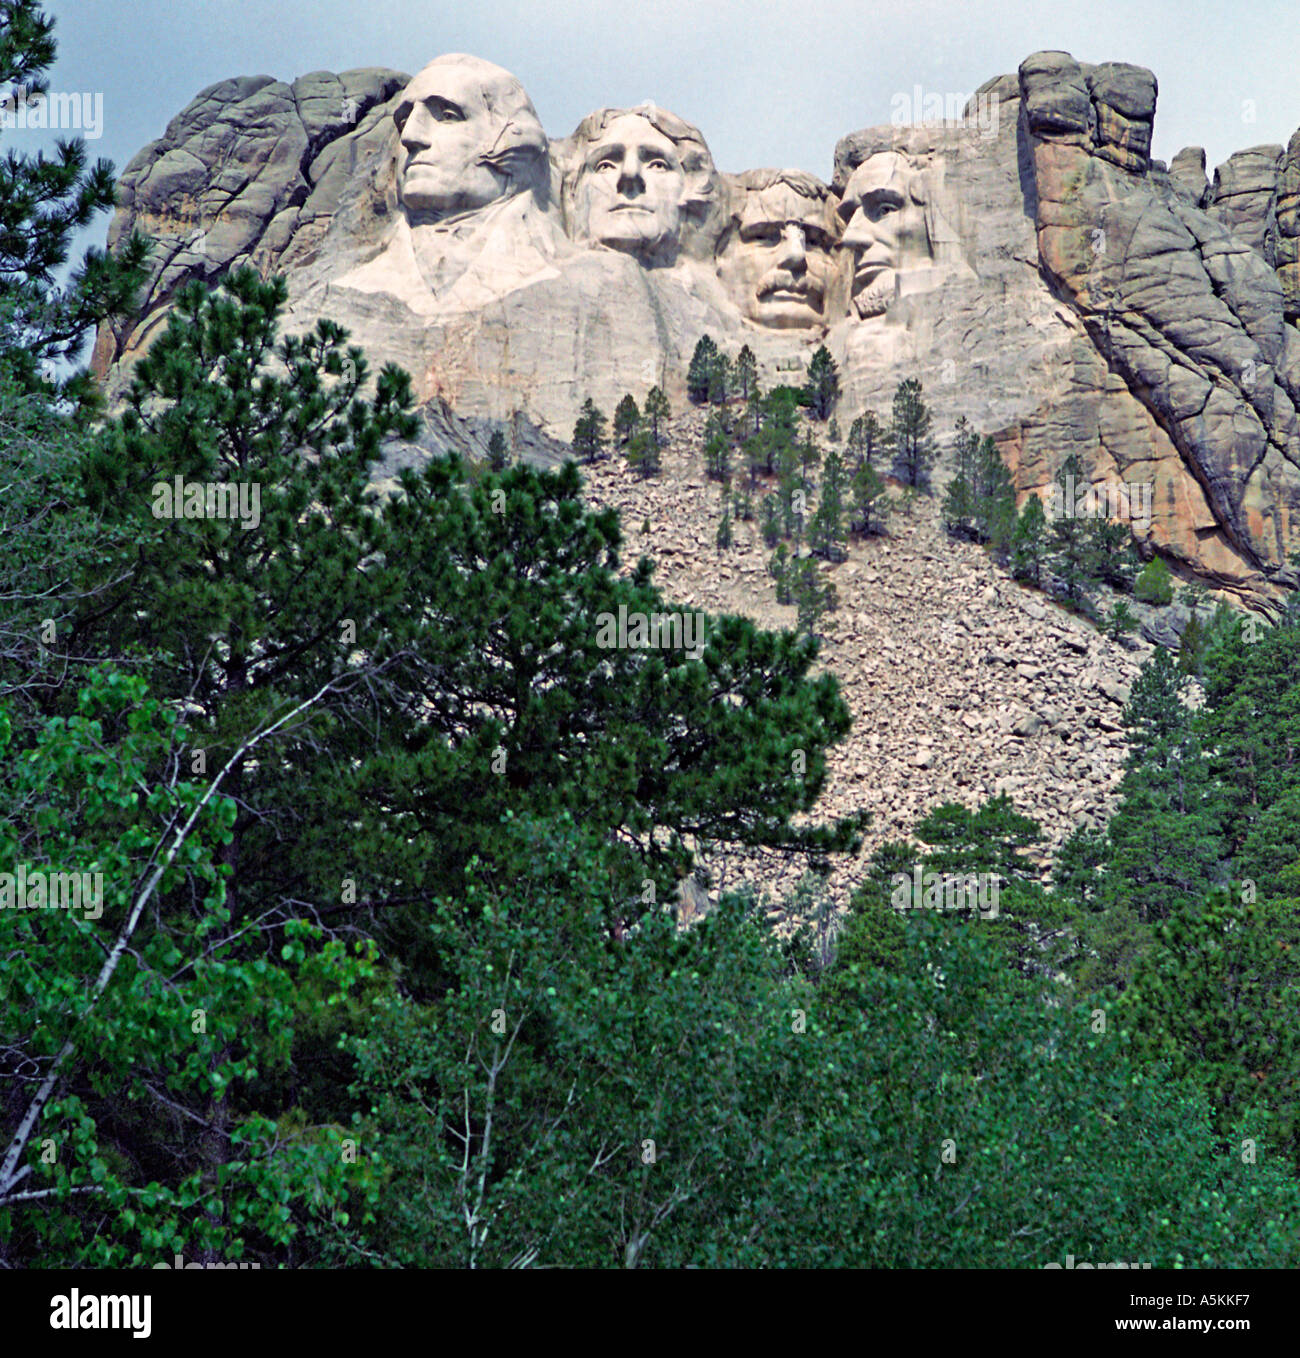 Mount Rushmore national Monument located in the Black Hills of South Dakota Stock Photo